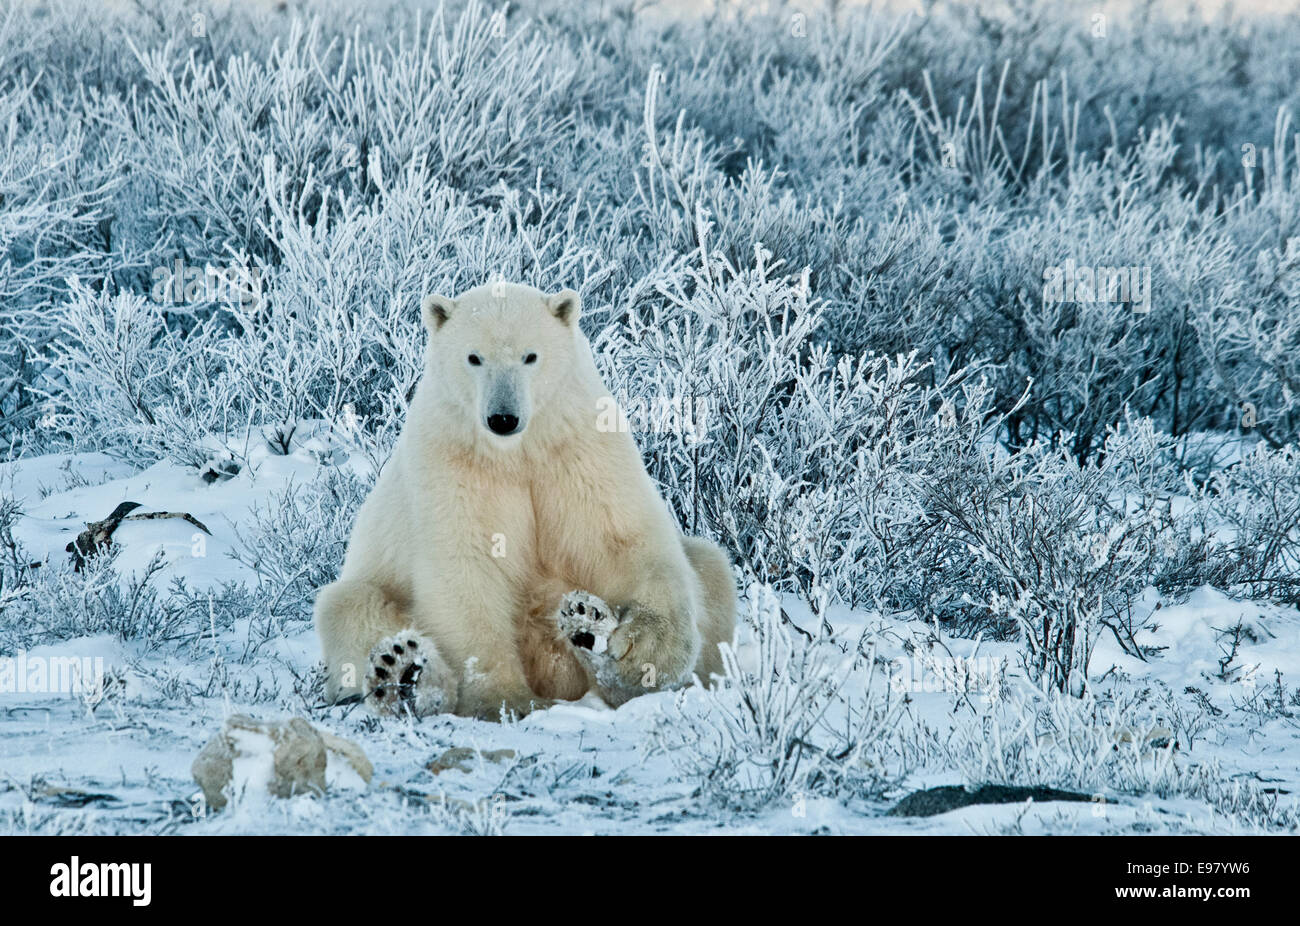 Polar Bear, Ursus maritimus, sitting among wiilows in the frost, near Hudson Bay, Cape Churchill, Manitoba, Canada - Stock Image